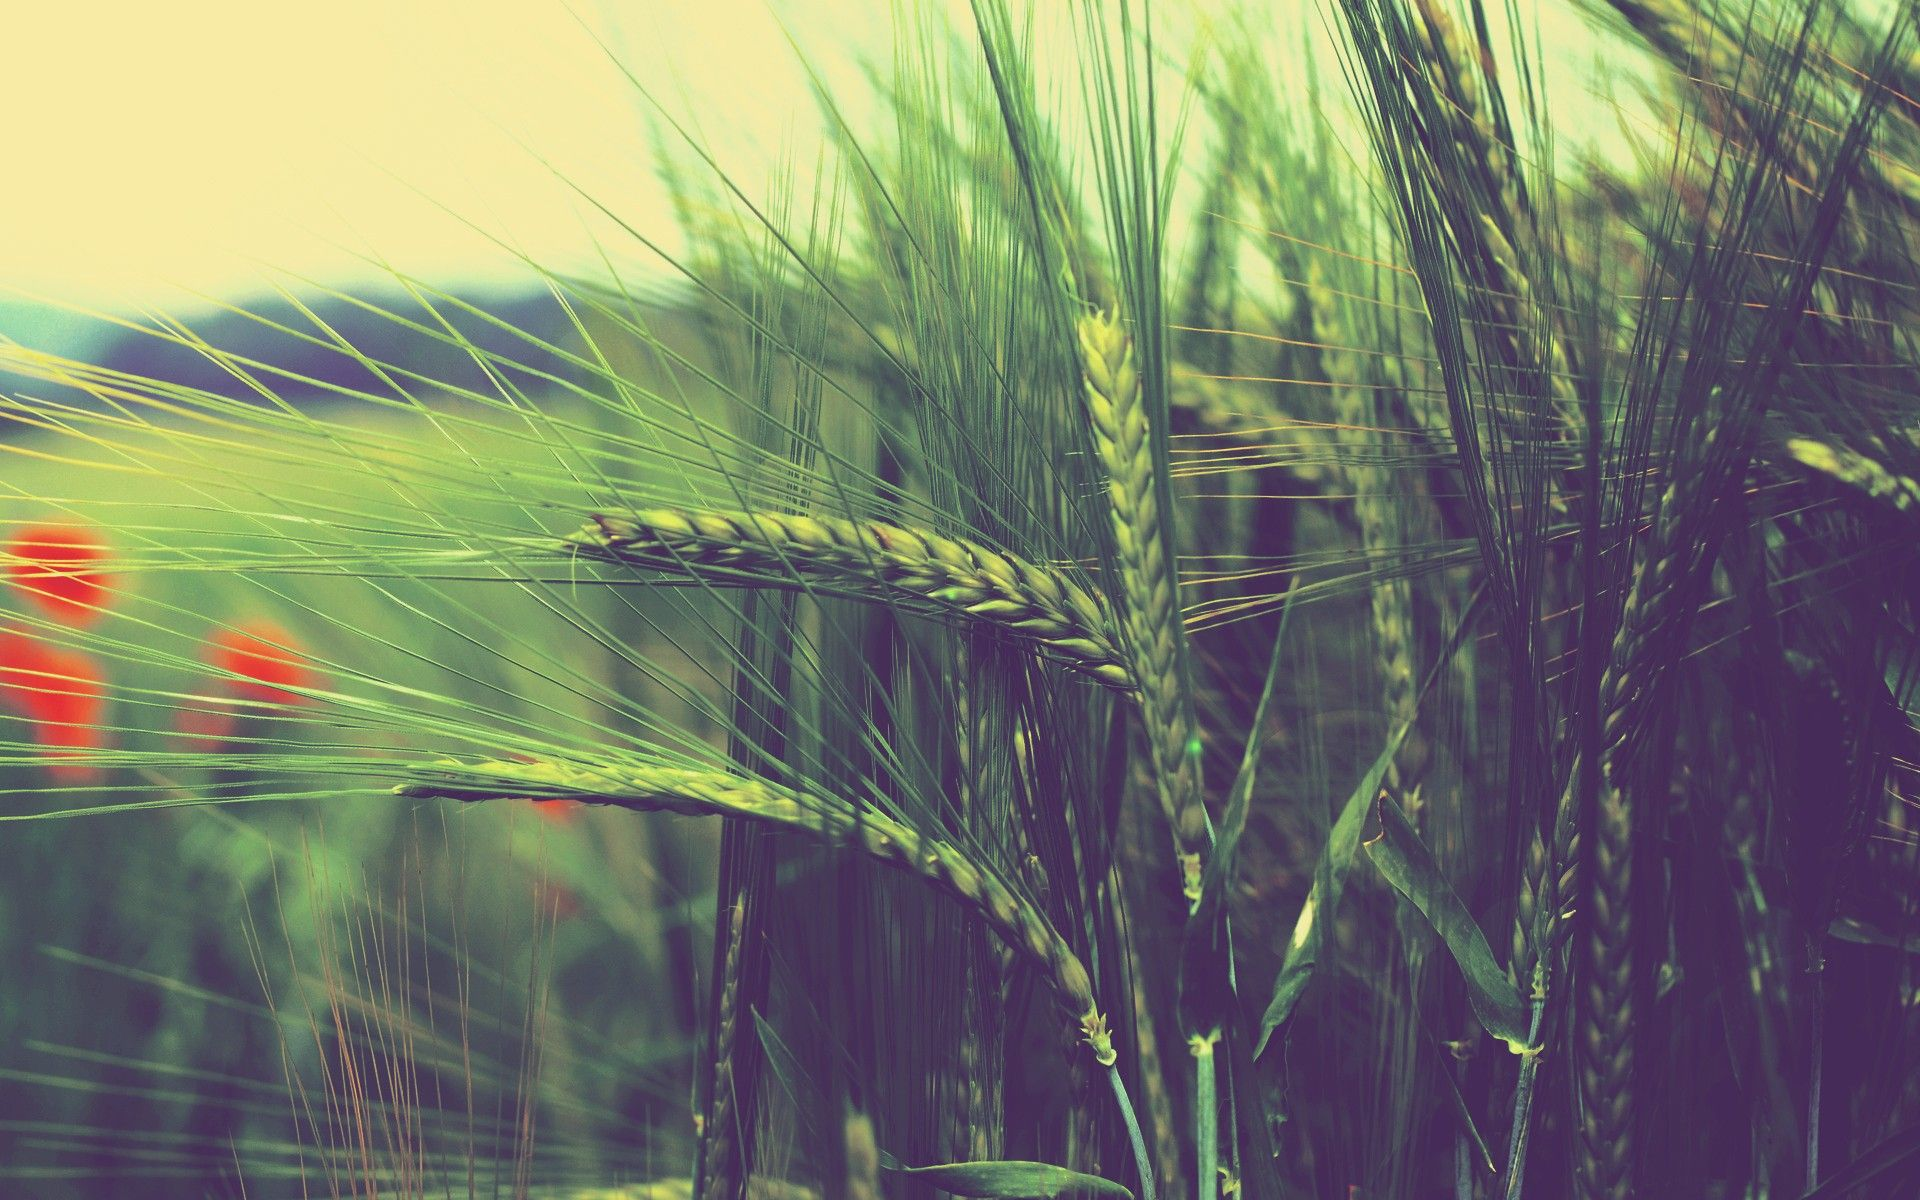 Nature-Fields-Summer-season-Wheat-Fresh-New-Hd-Wallpaper-2